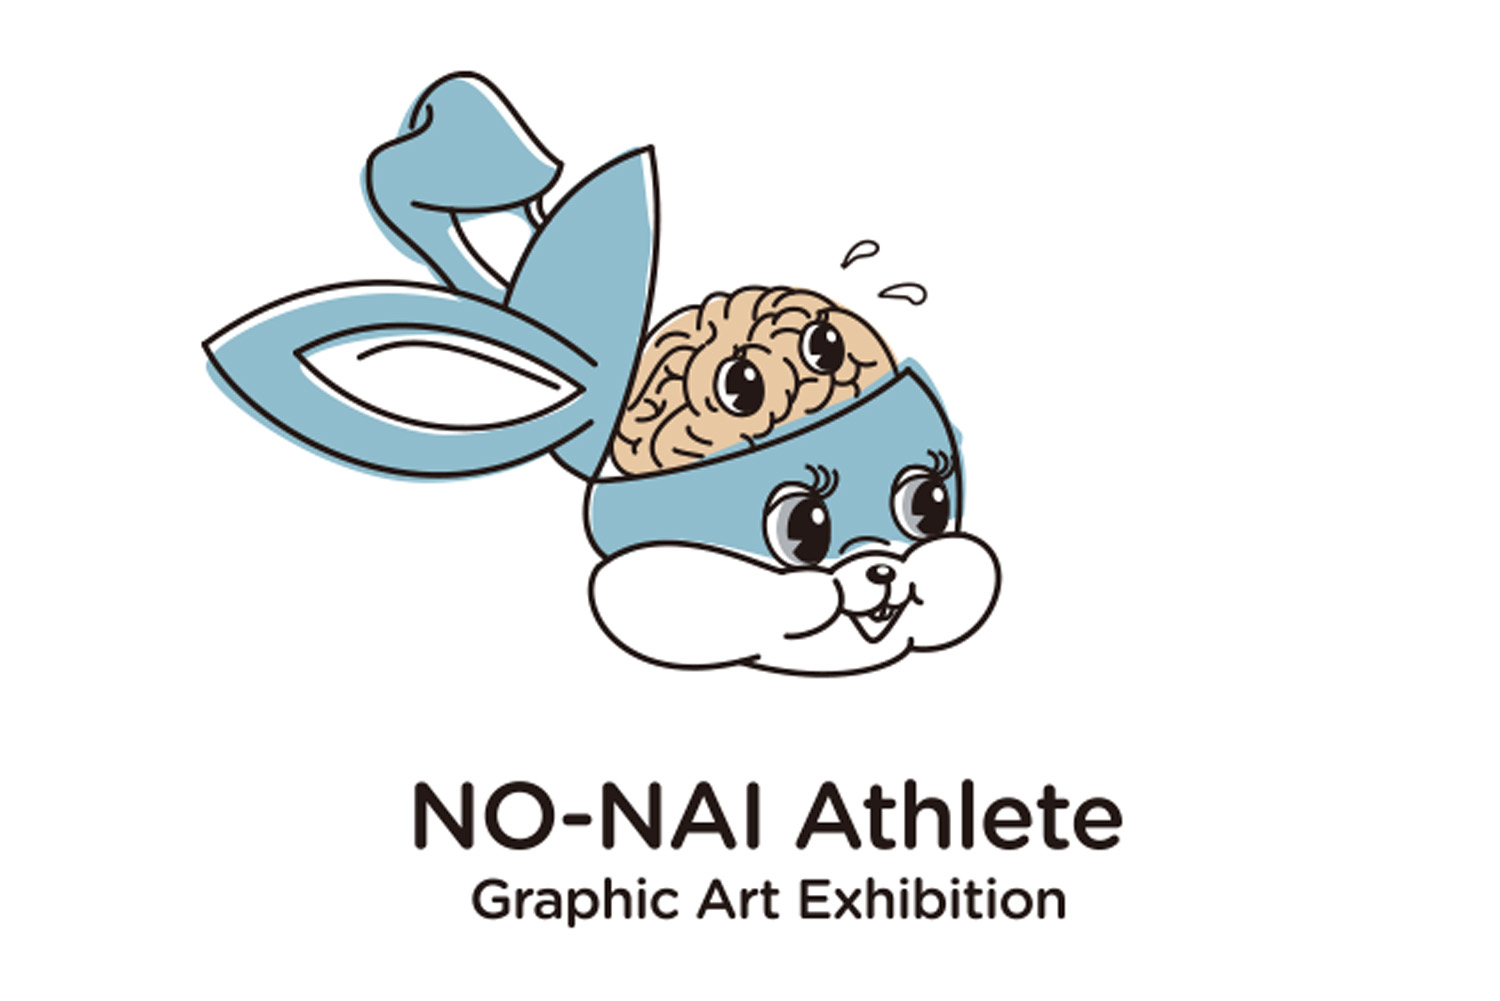 nonaiathlete_logo